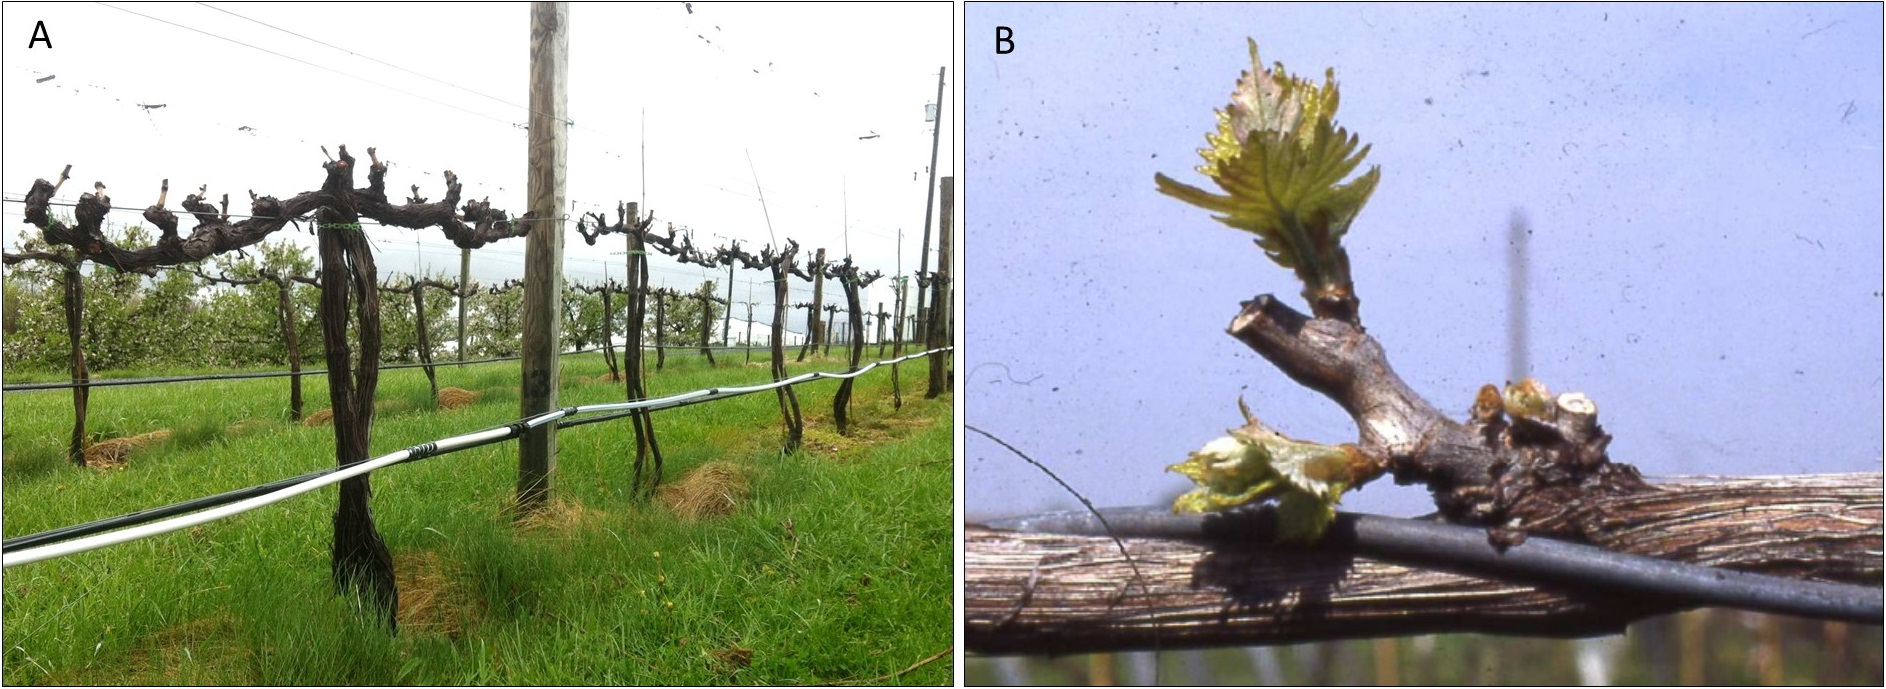 A Pruning Primer Penn State Extension Wine Grapes U